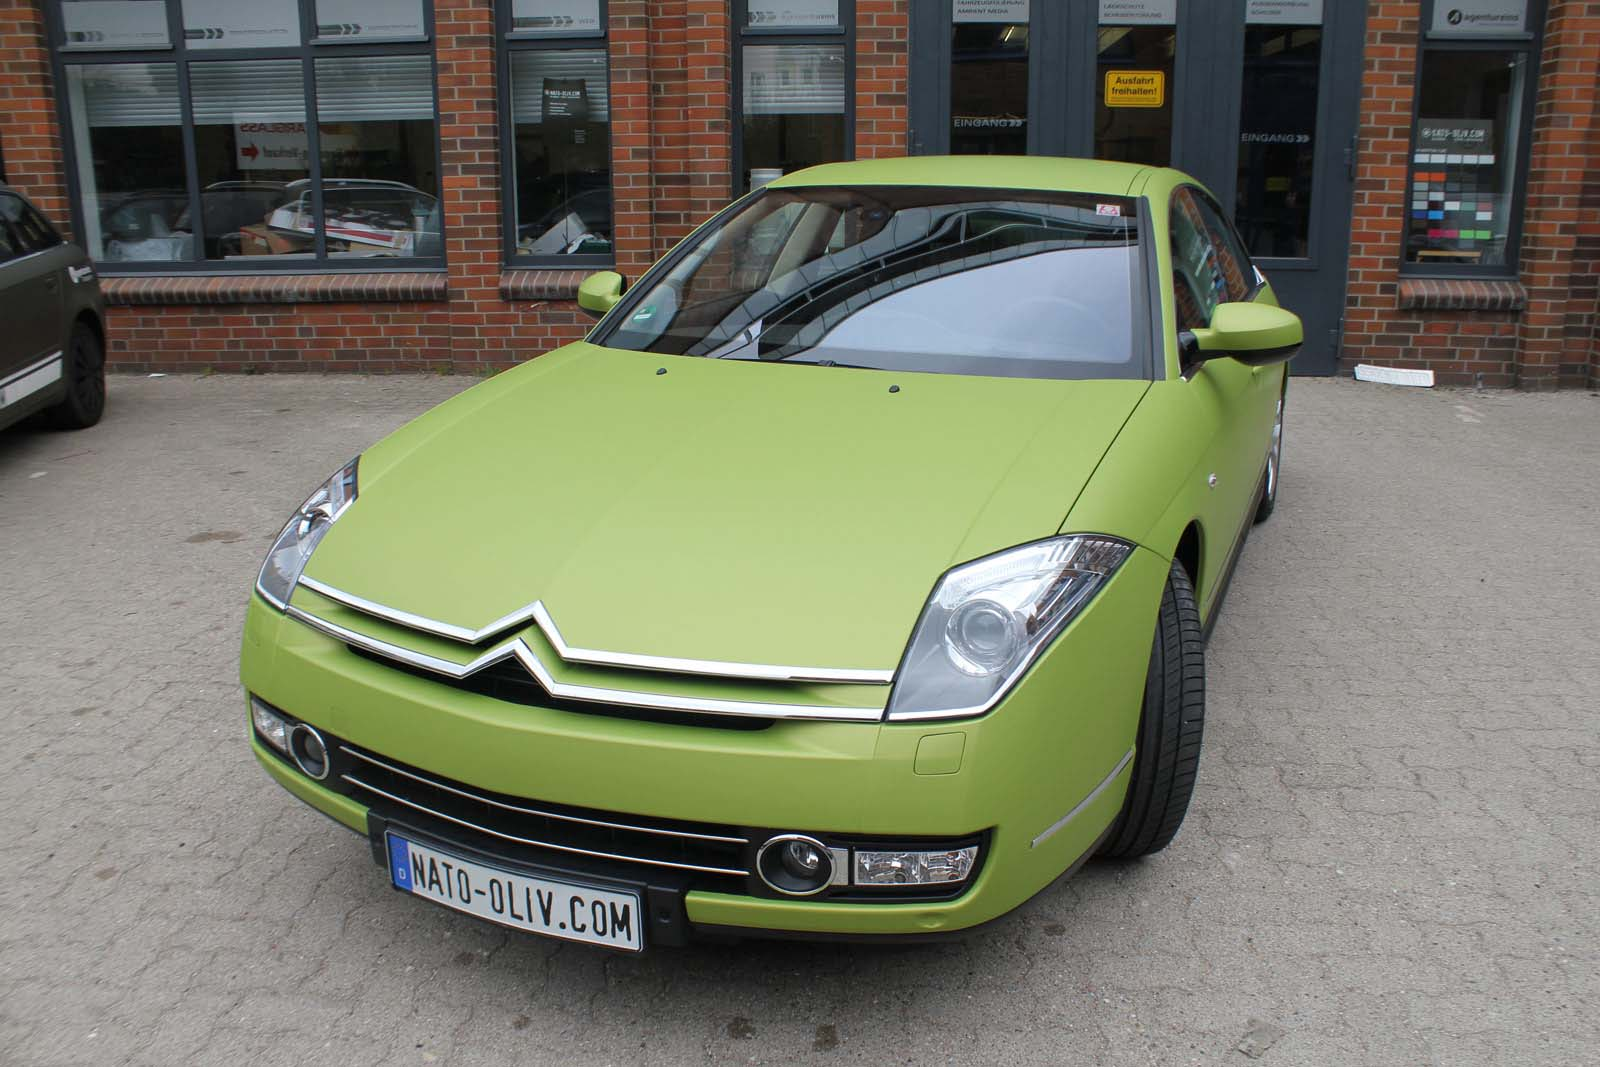 Citroen_C6_Folierung_Gruen_Matt_Metallic_03